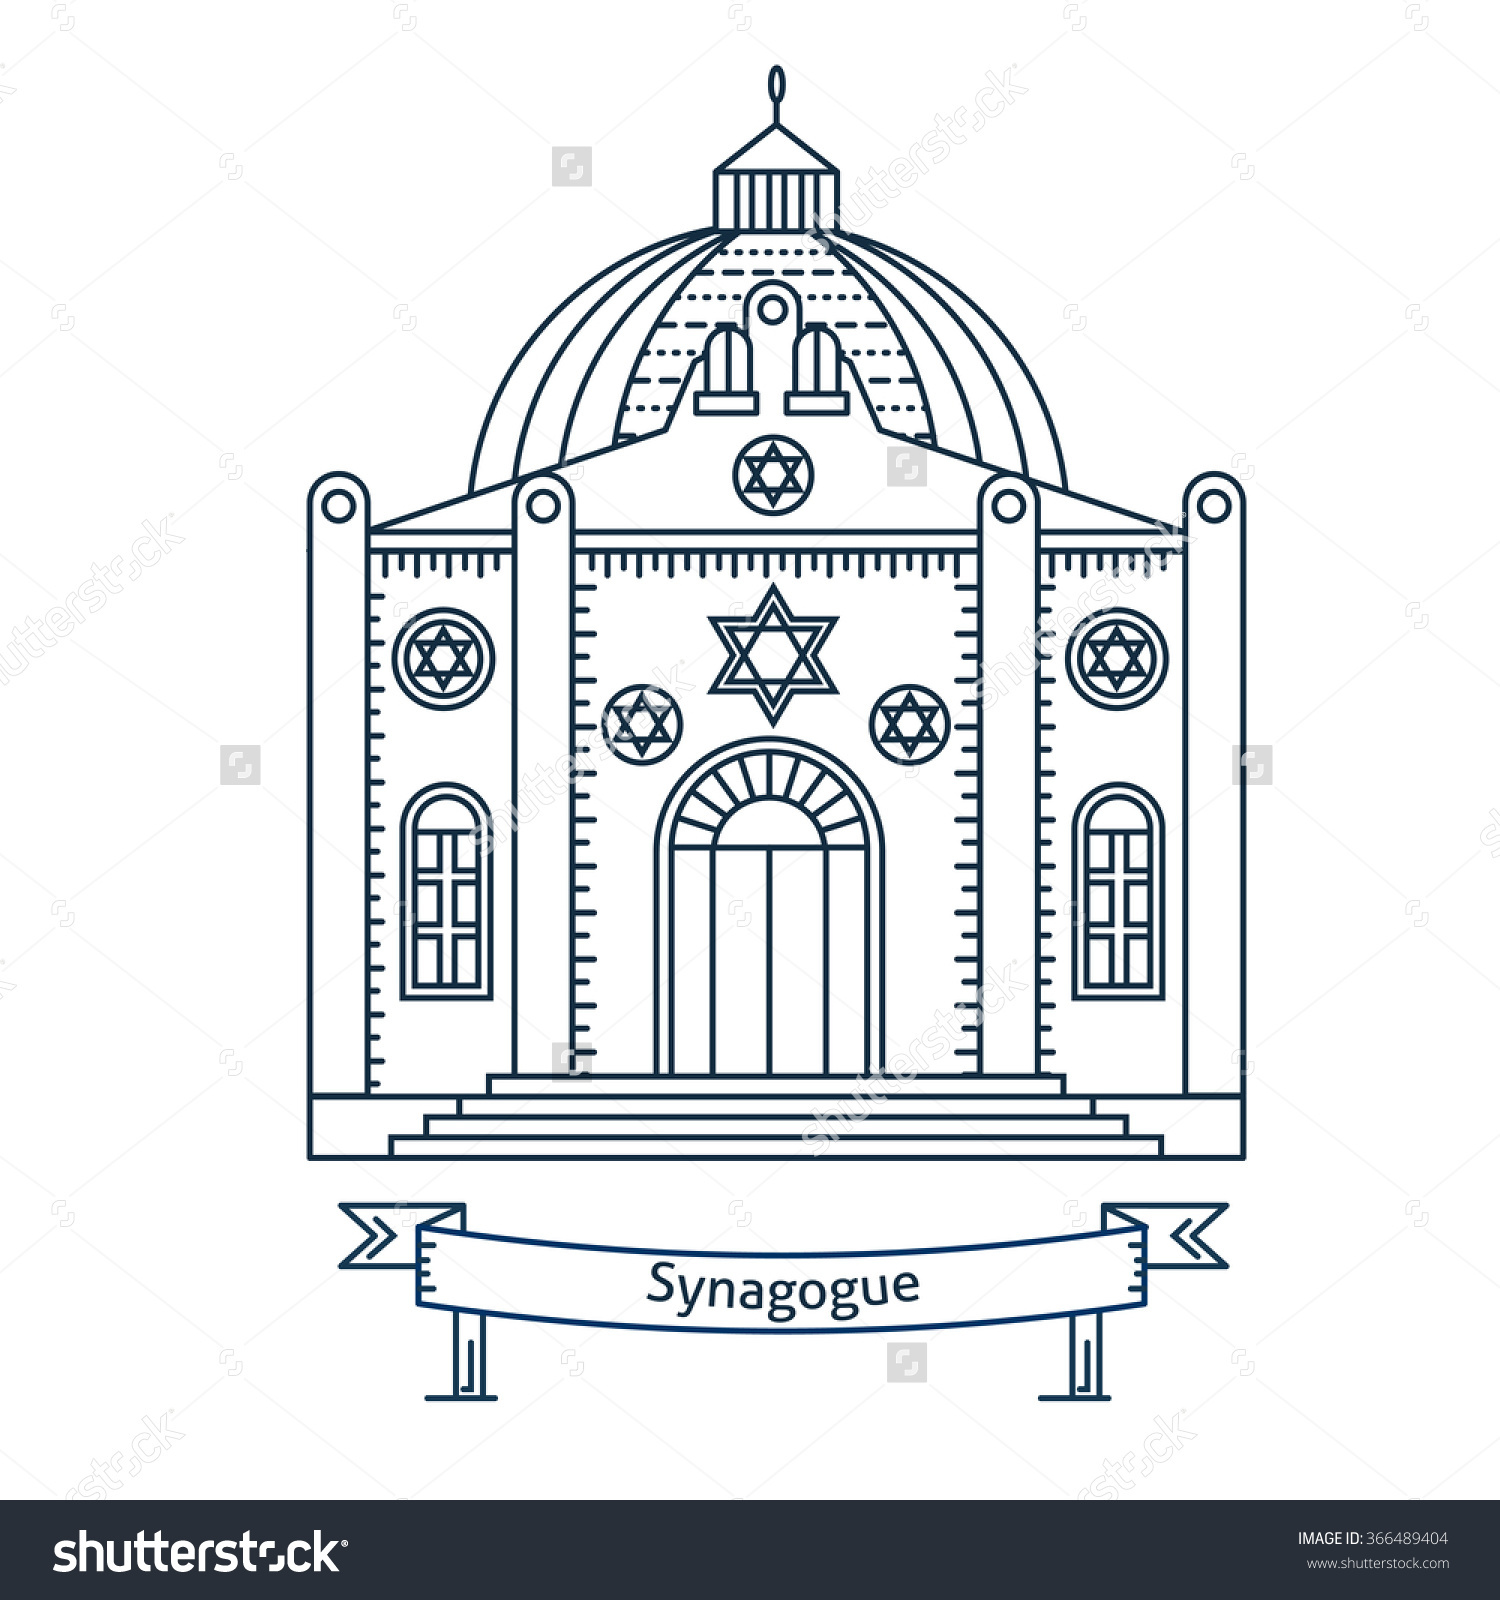 New Synagogue Clipart